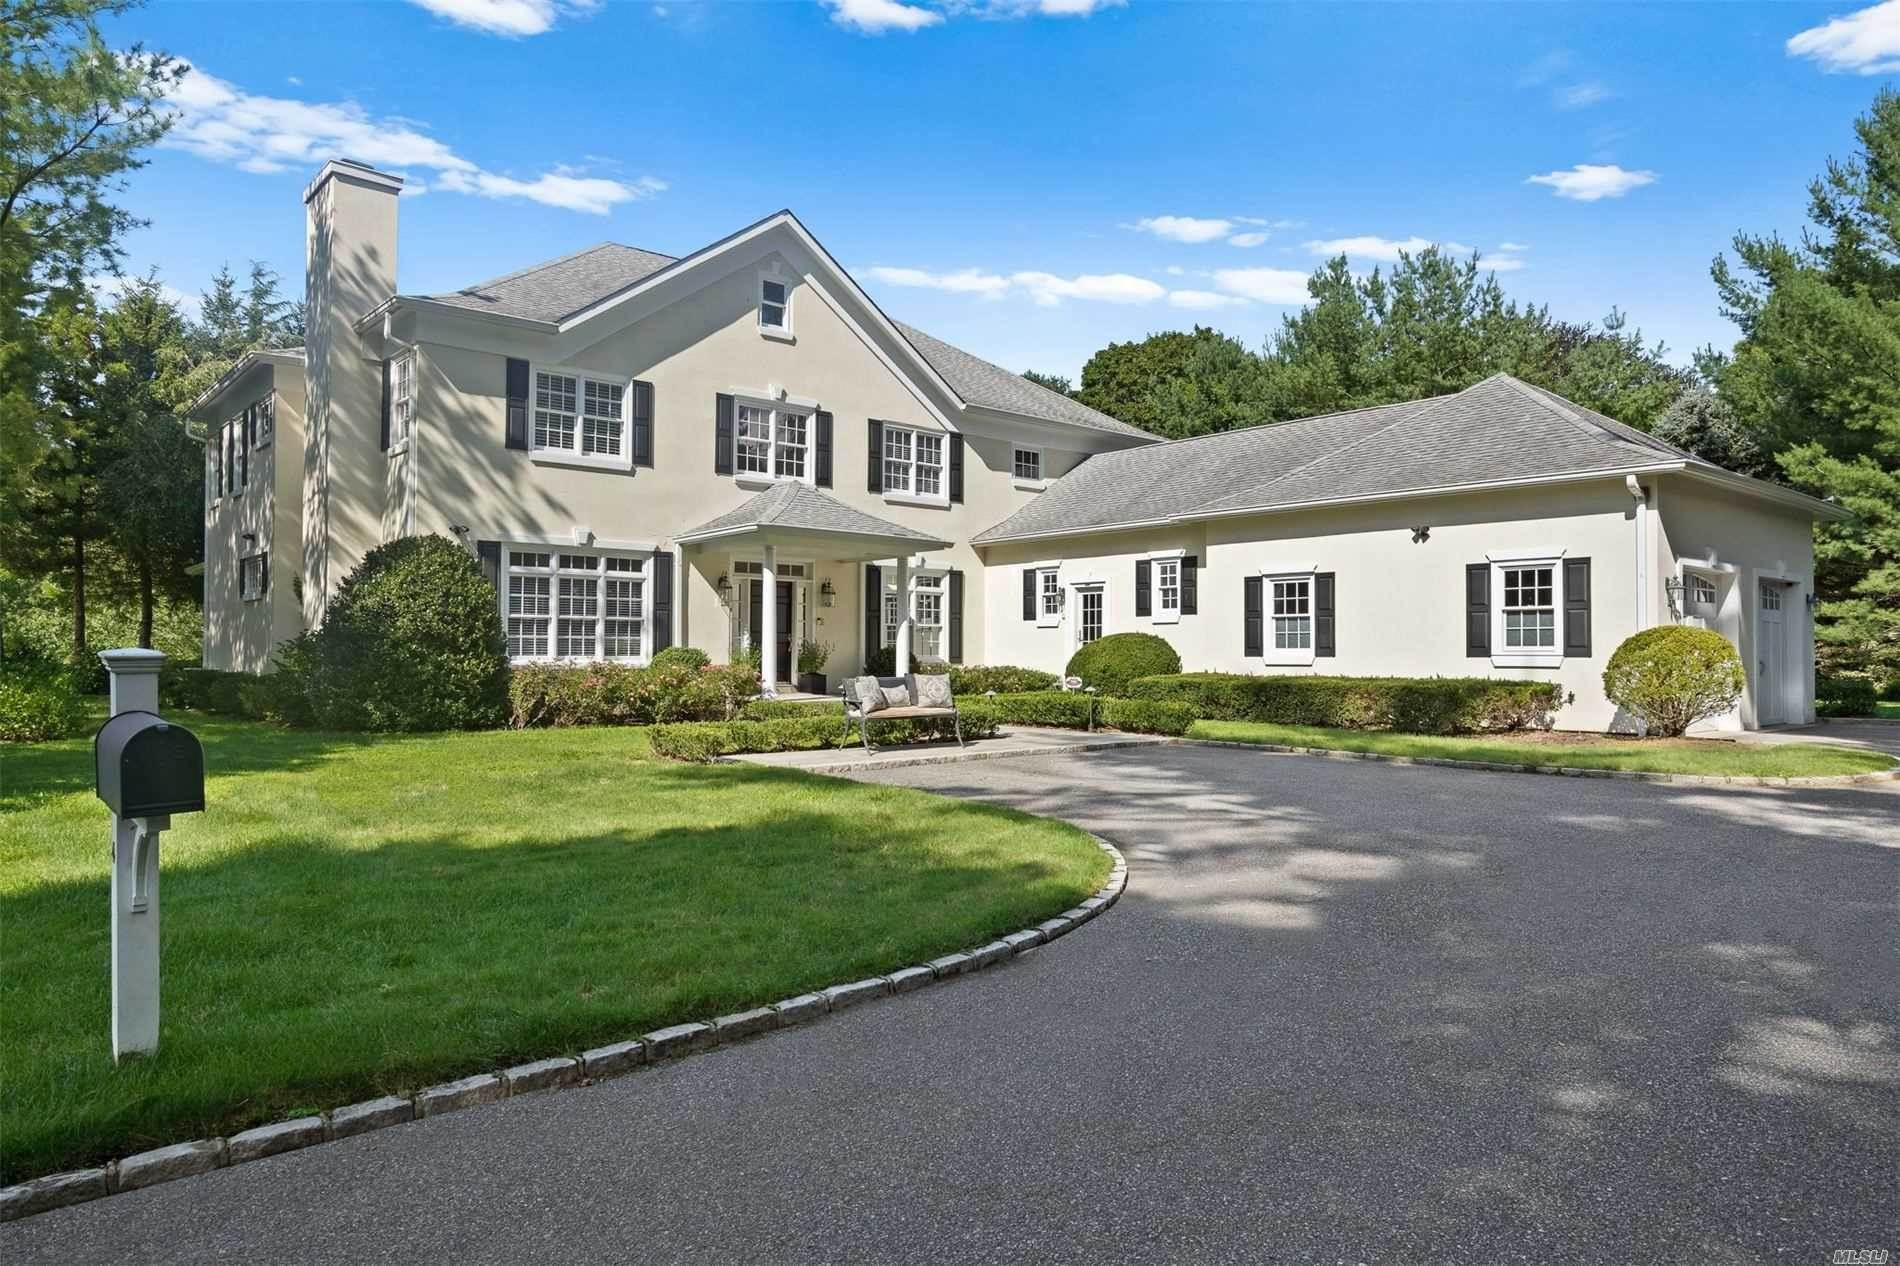 Residential for Sale at 4 Morgan Lane Locust Valley, New York 11560 United States